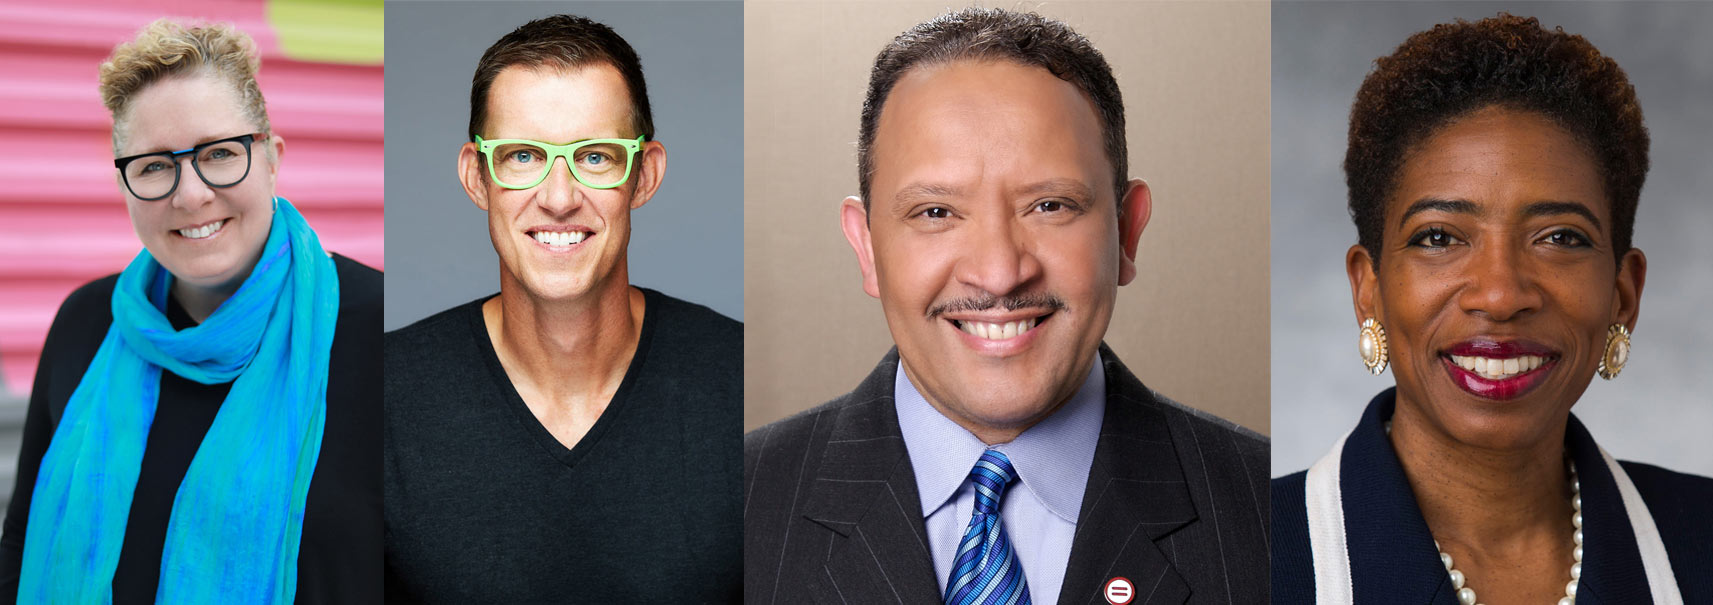 Check Out These Powerful Keynote Presenters at Staffing World 2020